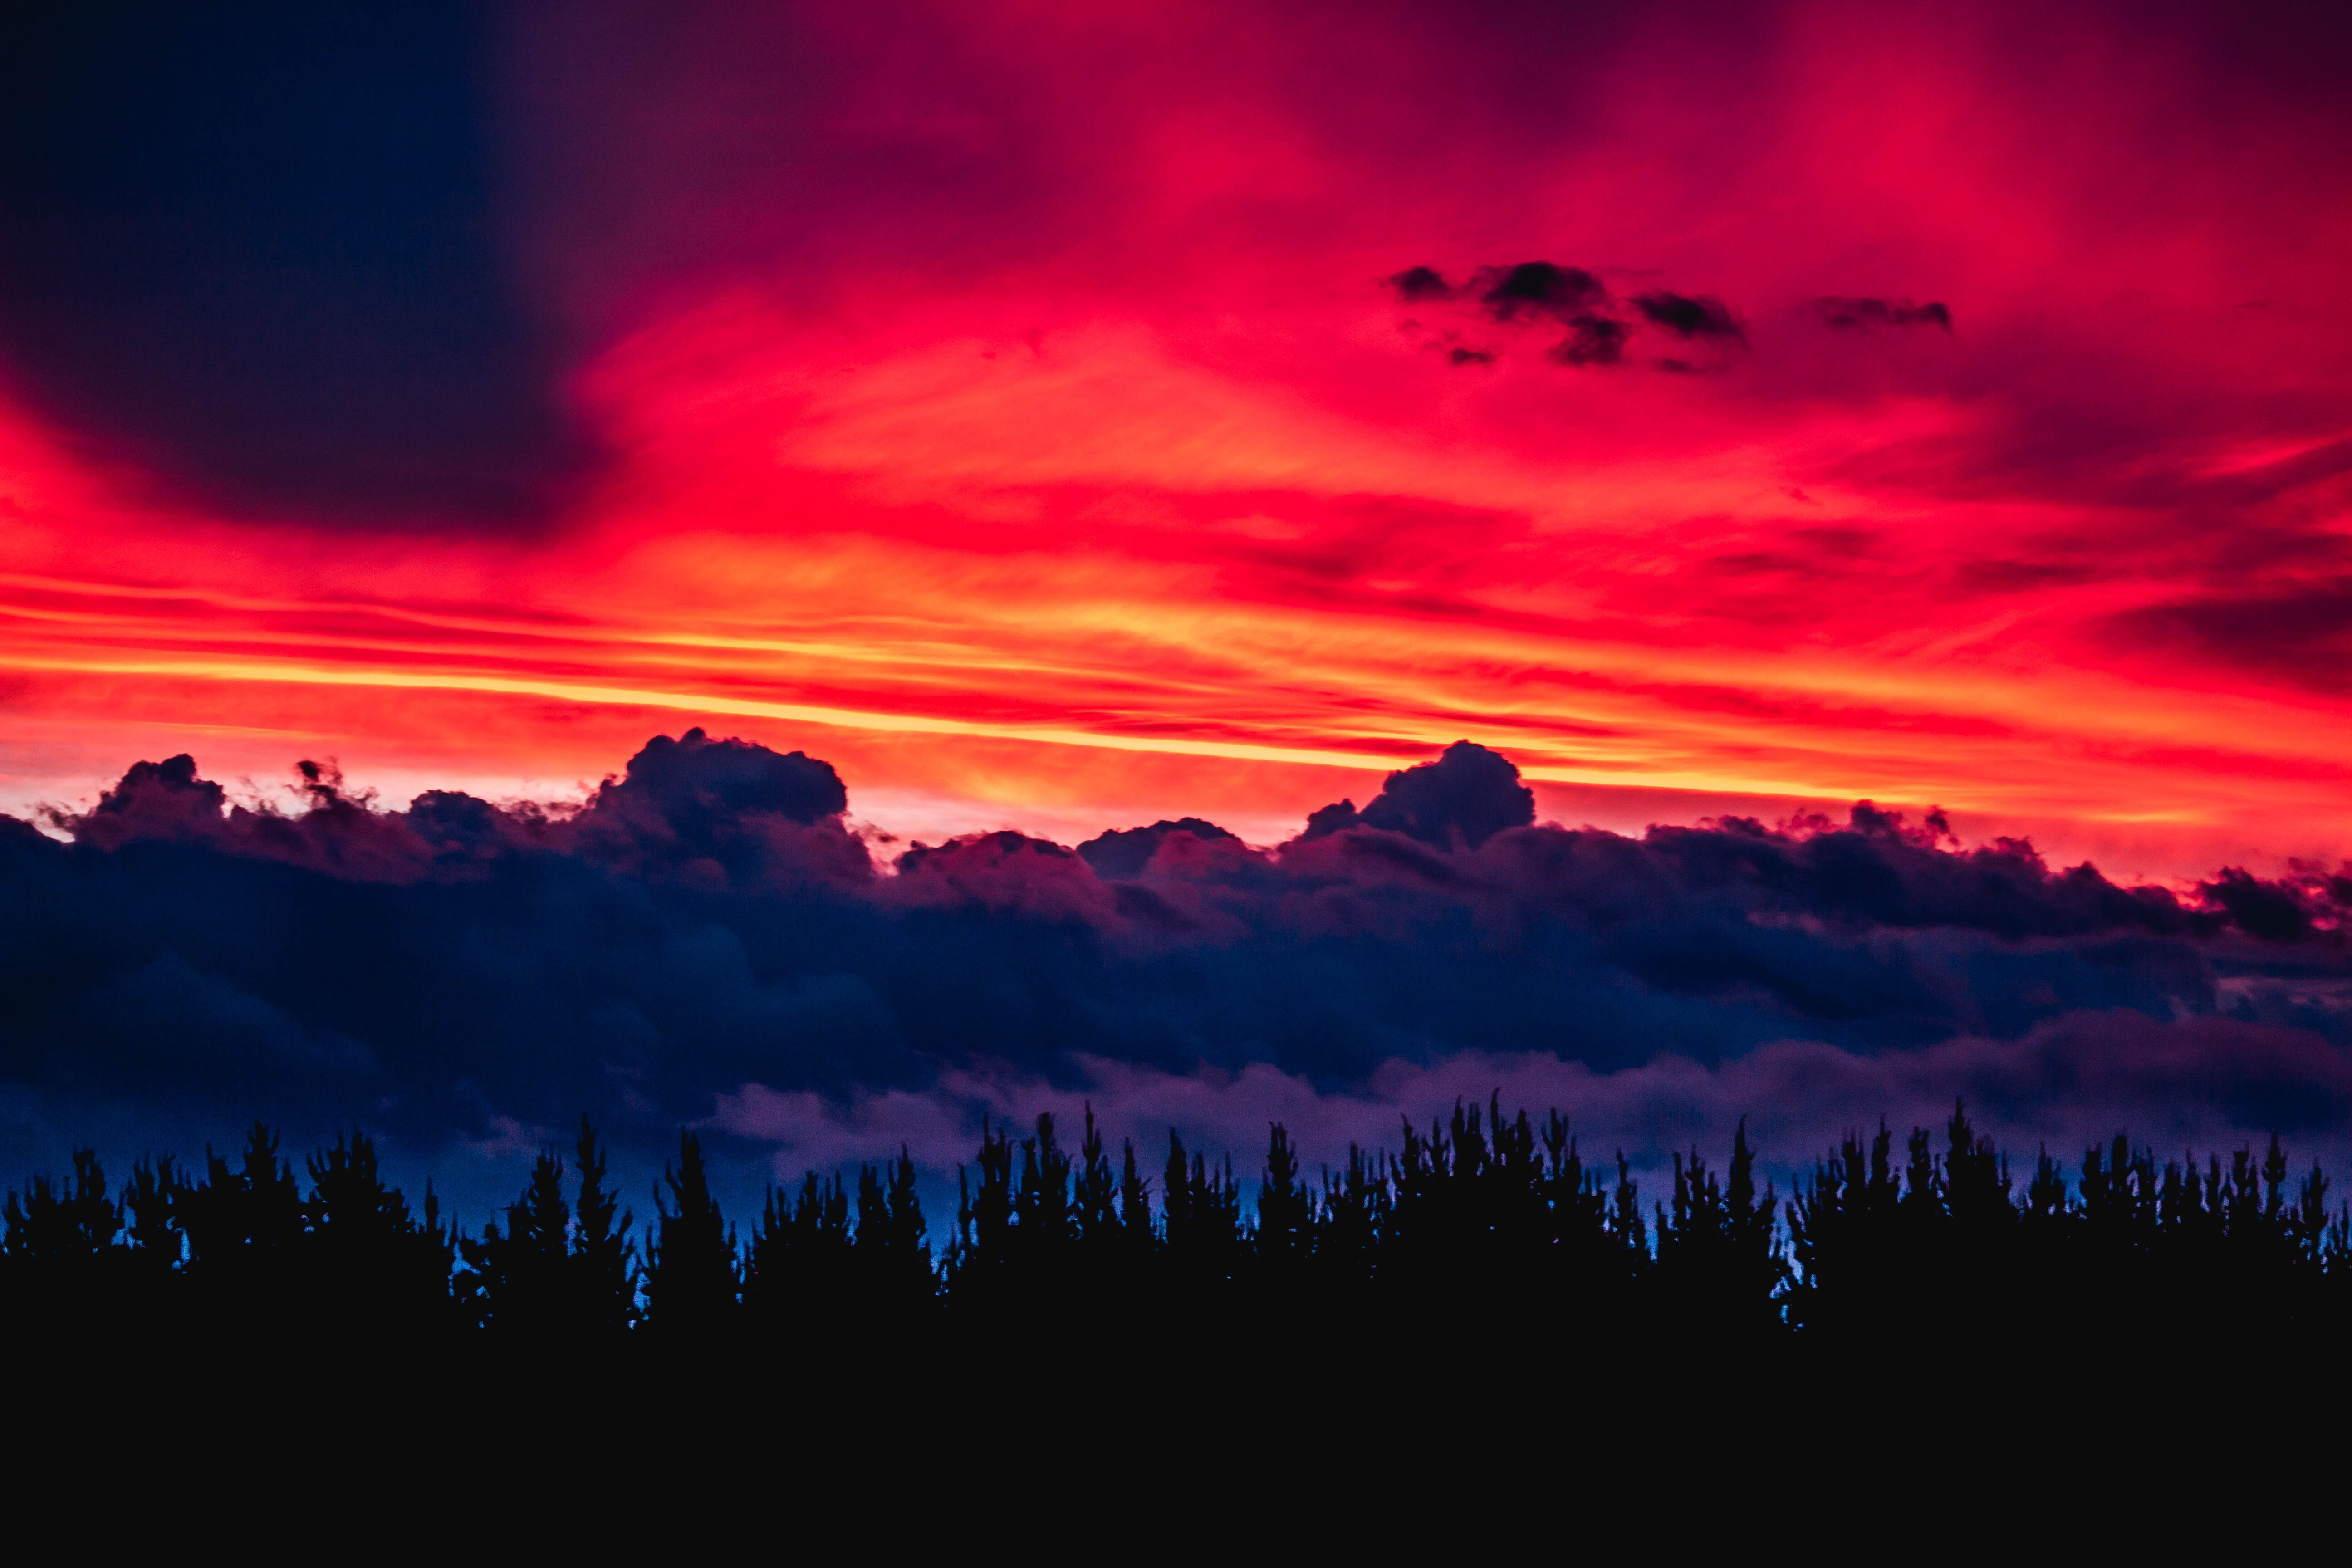 silhouette of trees under red sky